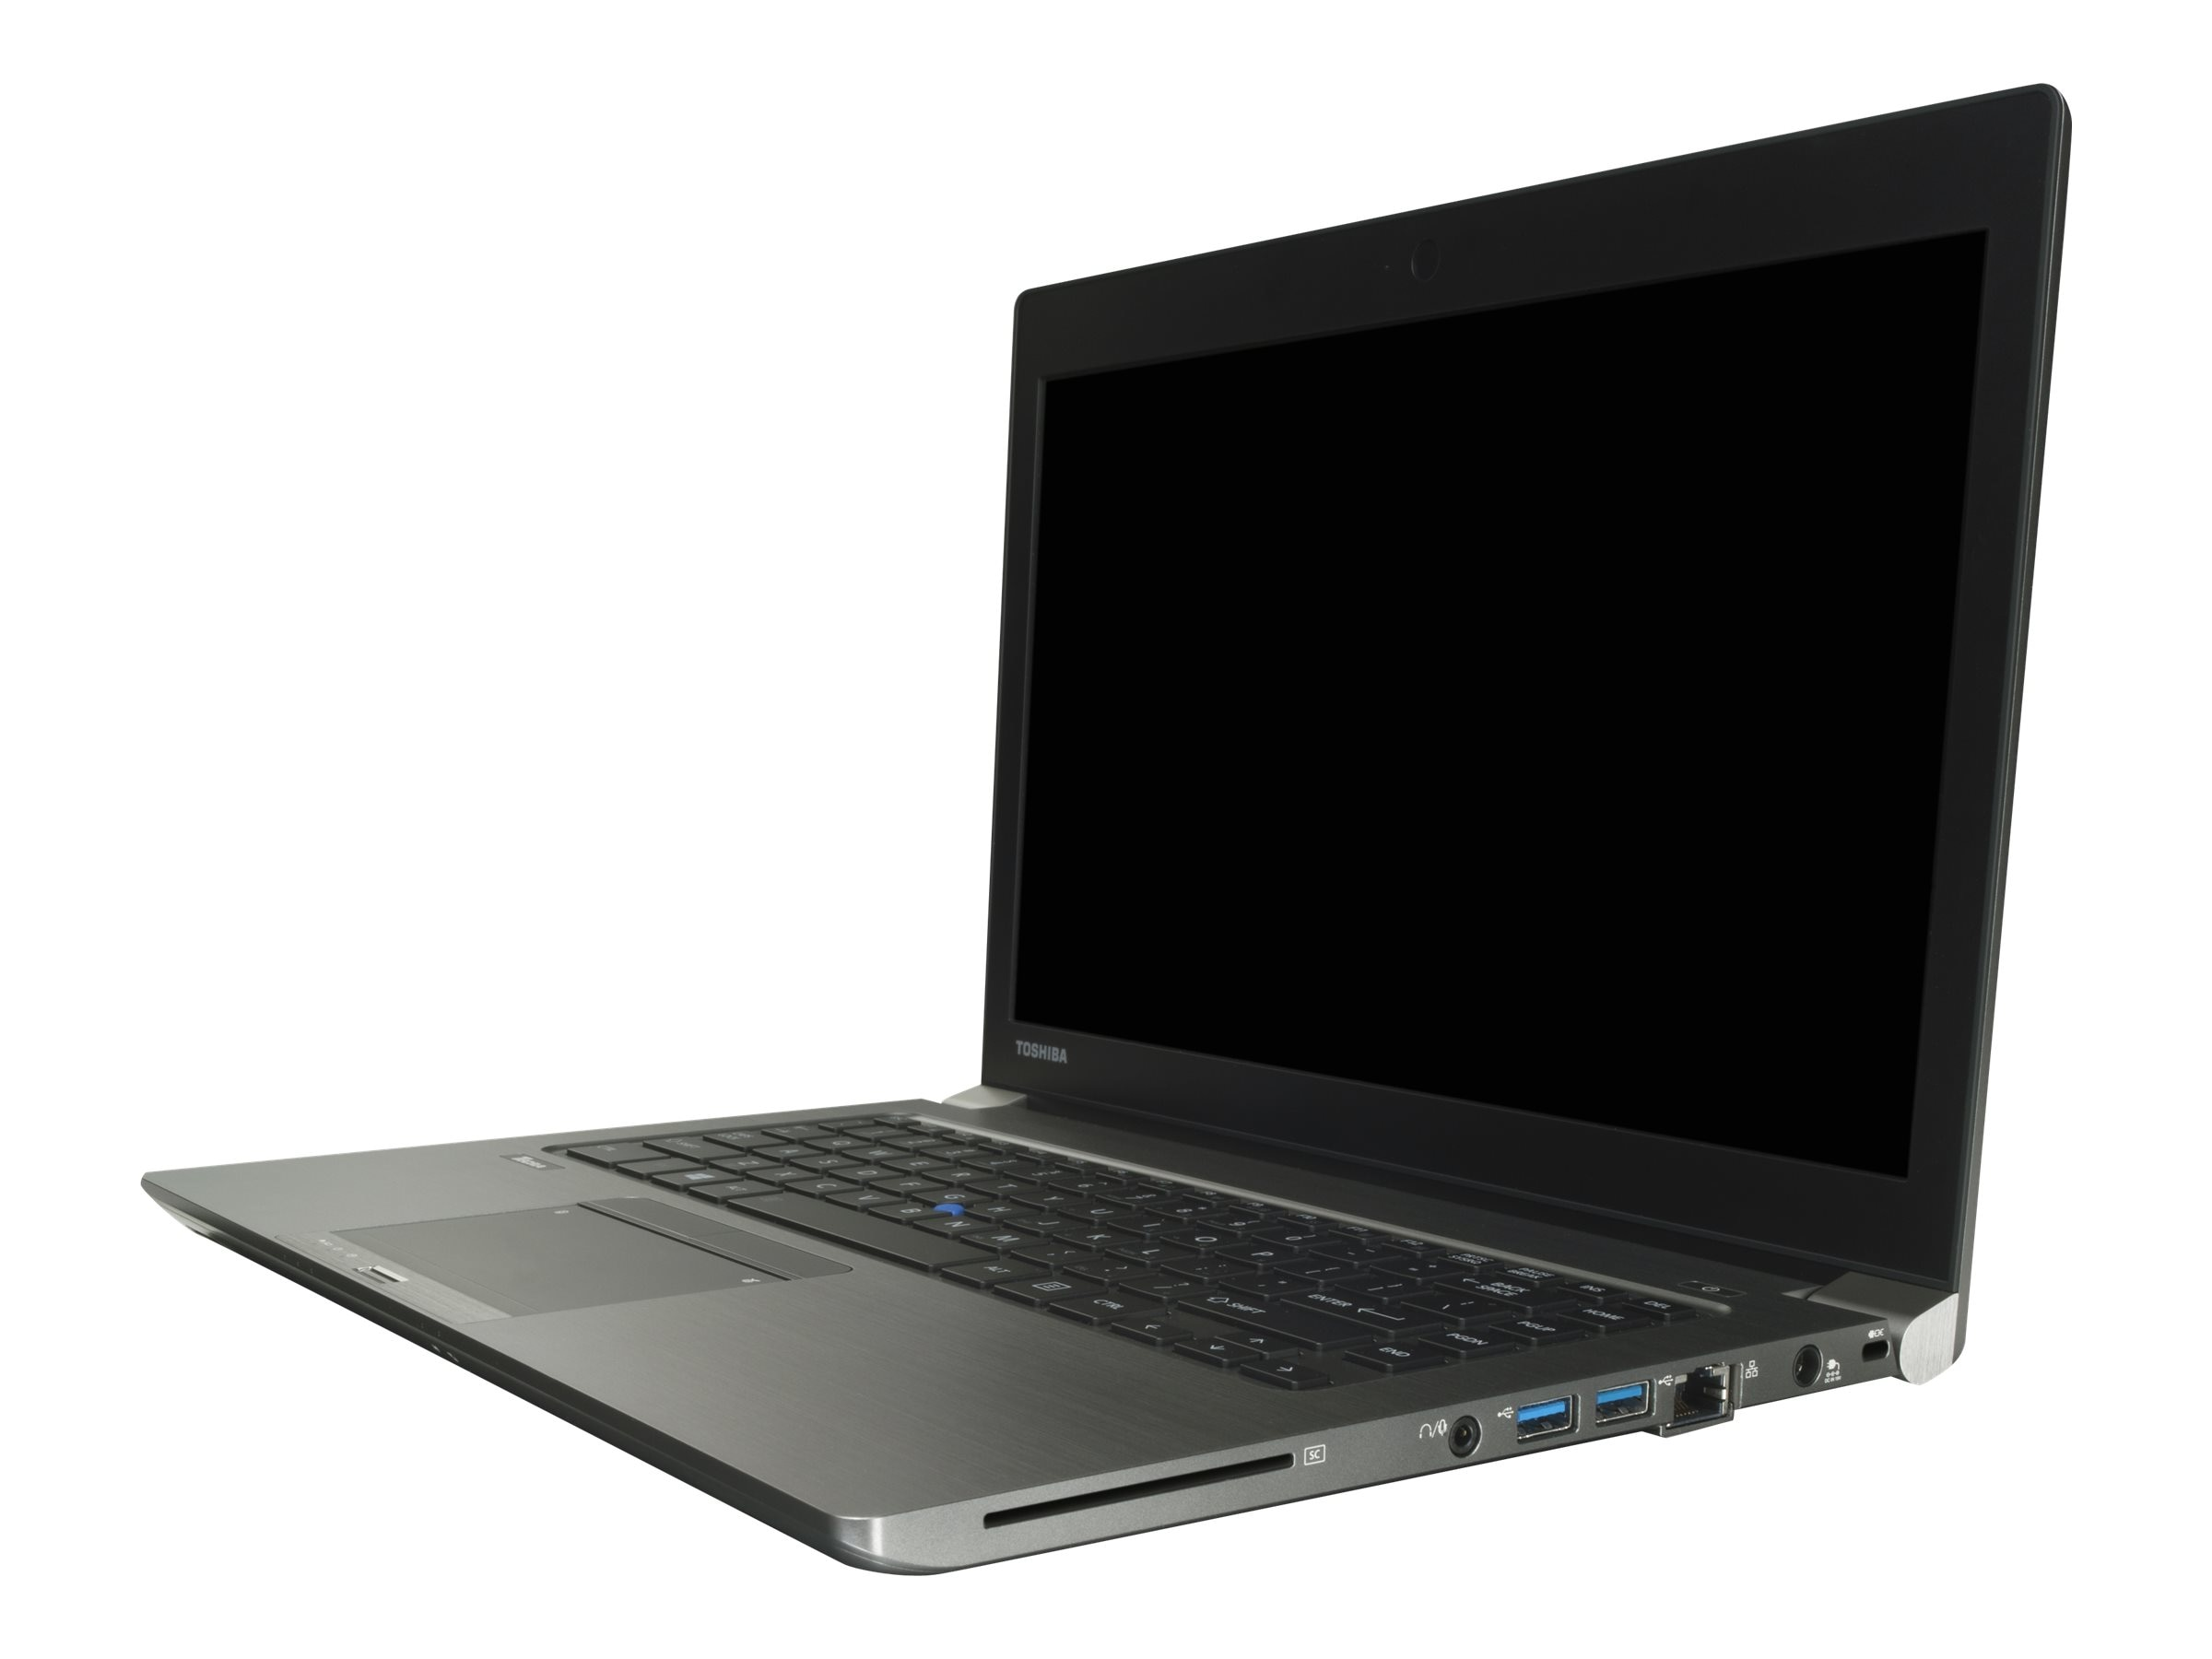 Toshiba Tecra Z40-B1420 2.6GHz Core i7 14in display, PT45GU-00R001, 18419352, Notebooks